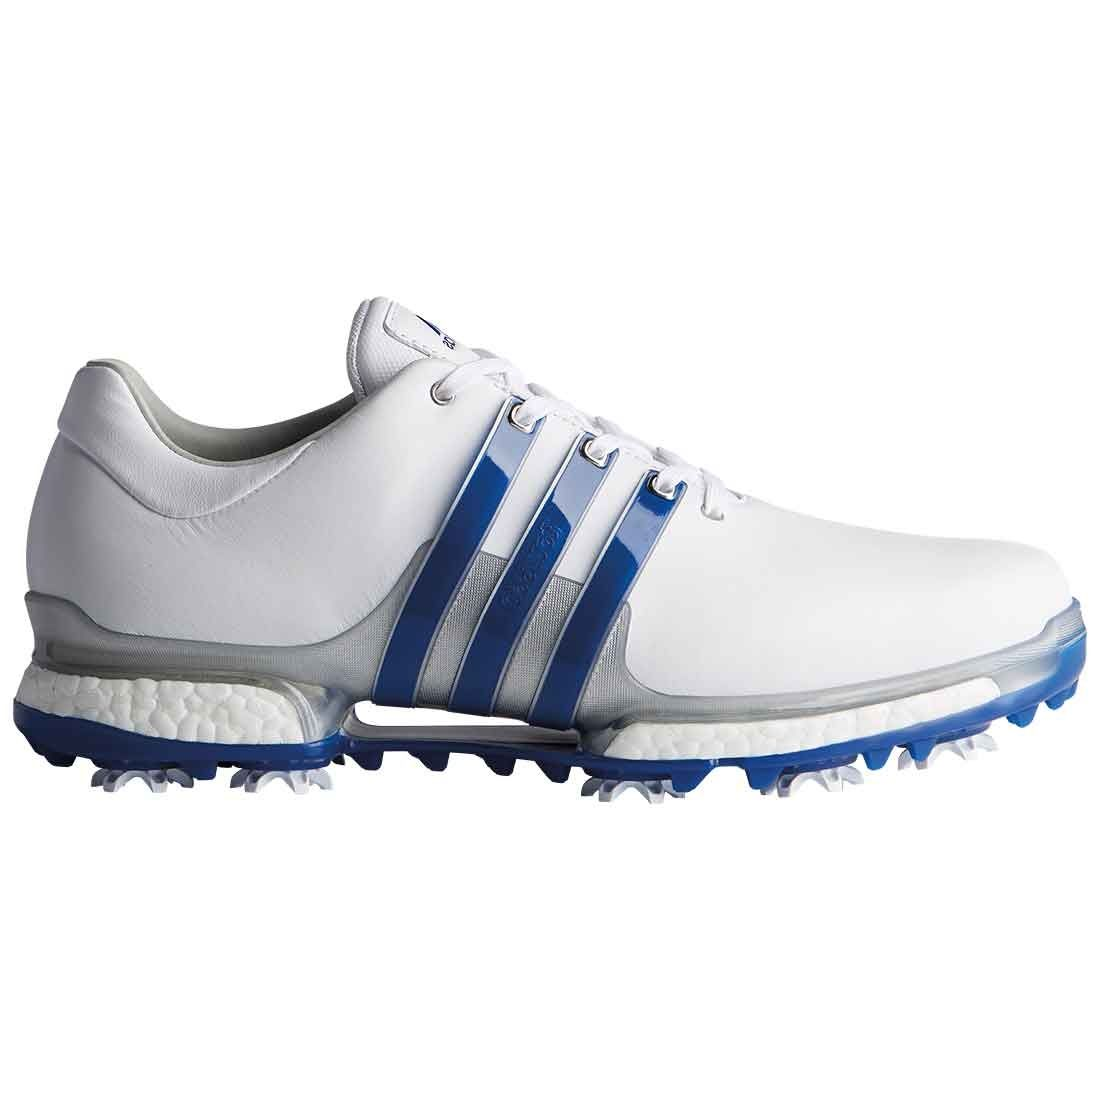 Buy Adidas Tour360 Boost 2.0 Golf Shoes White/Collegiate Royal ...